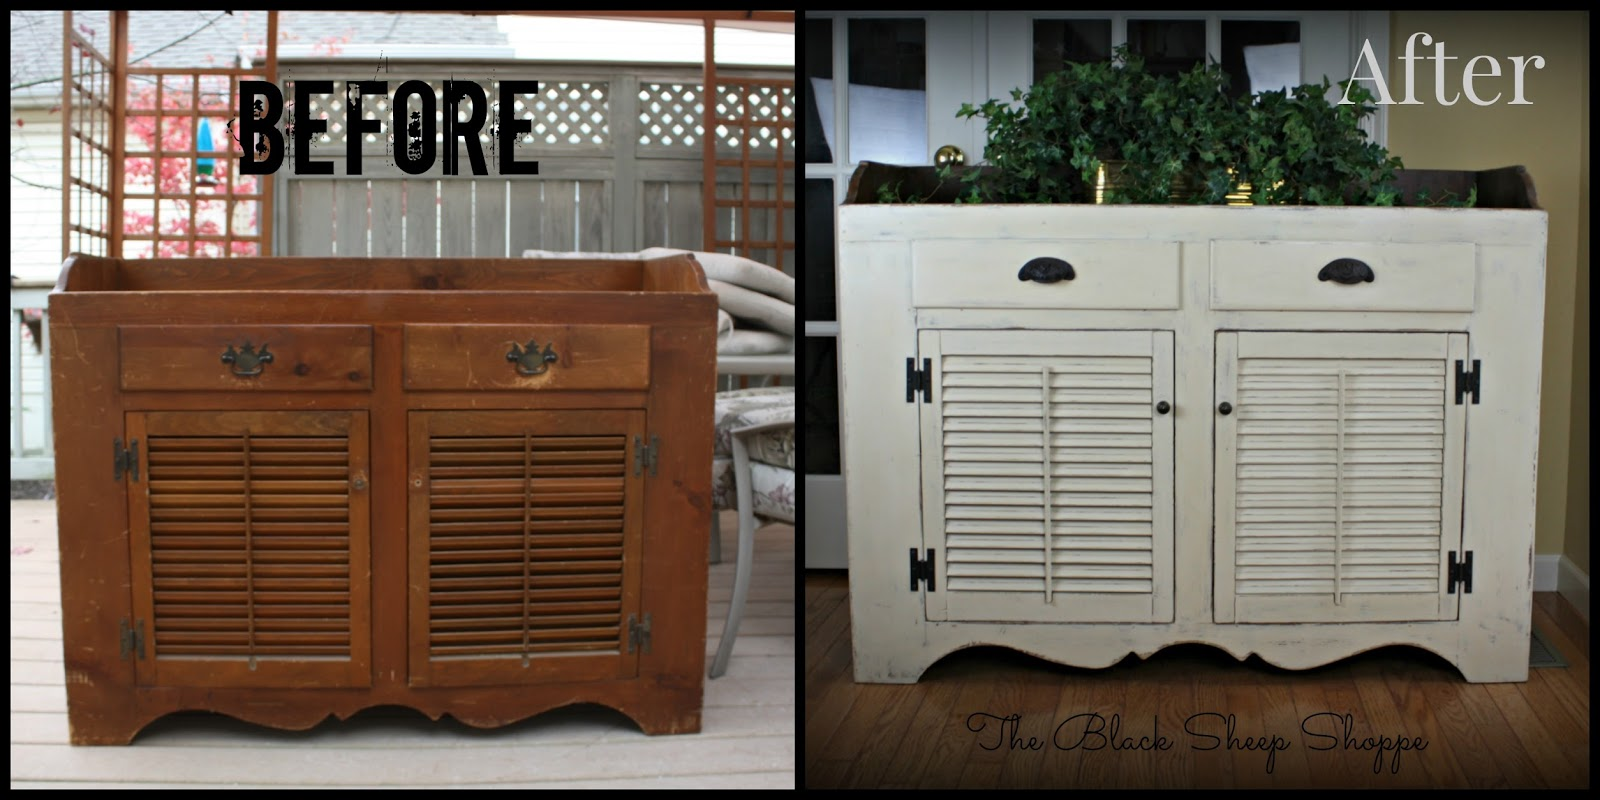 Vintage dry sink before and after.